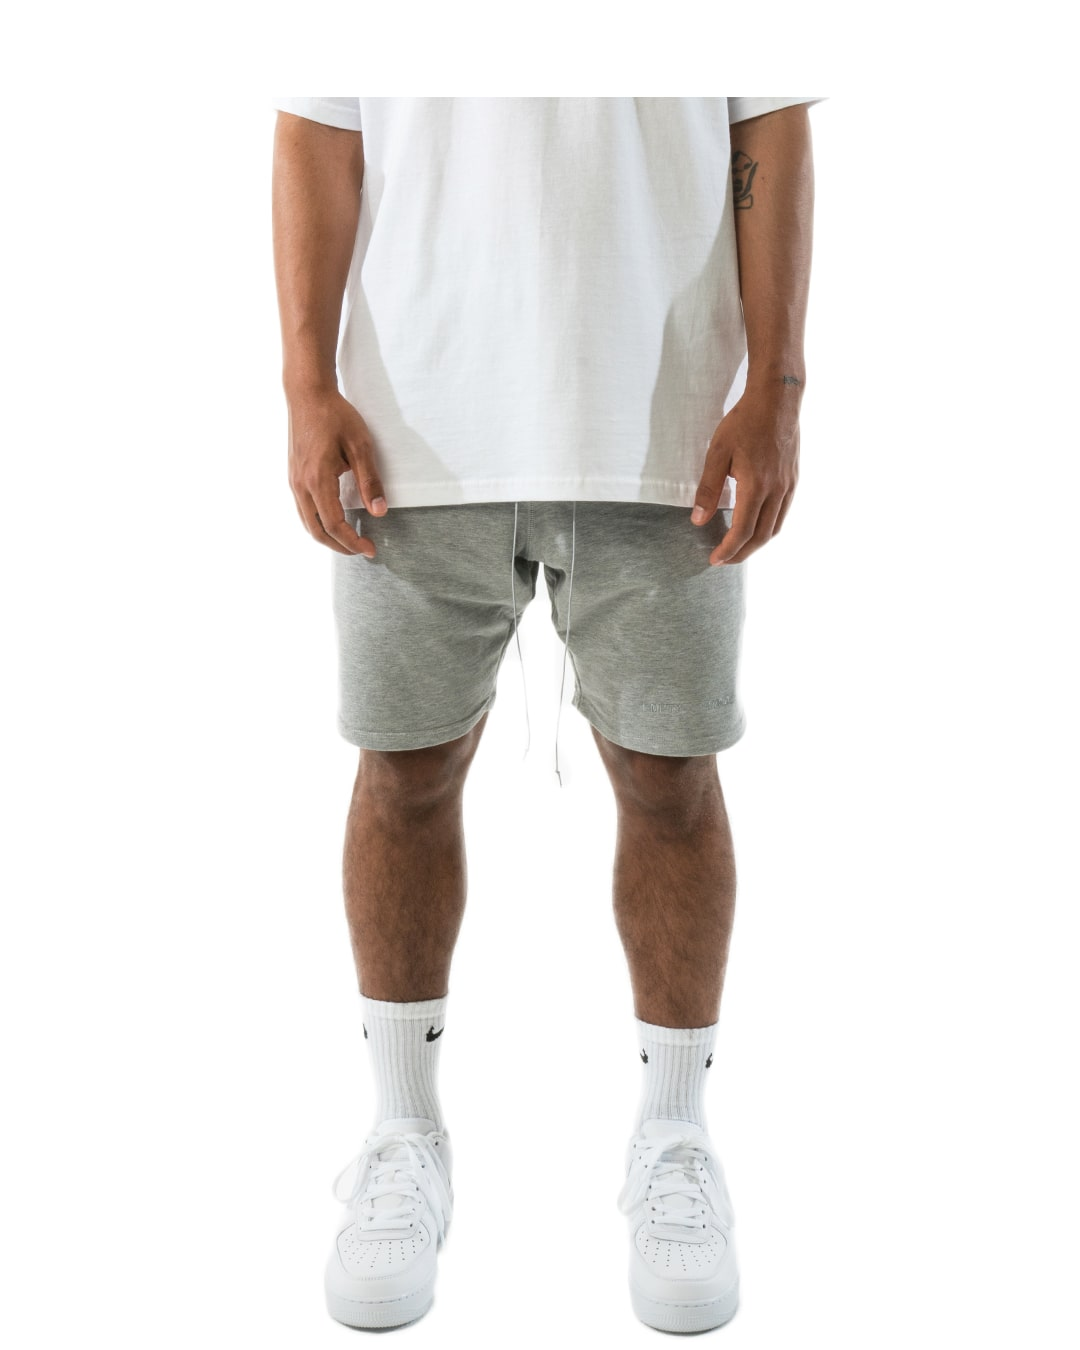 INVISIBLE SHORTS – GREY